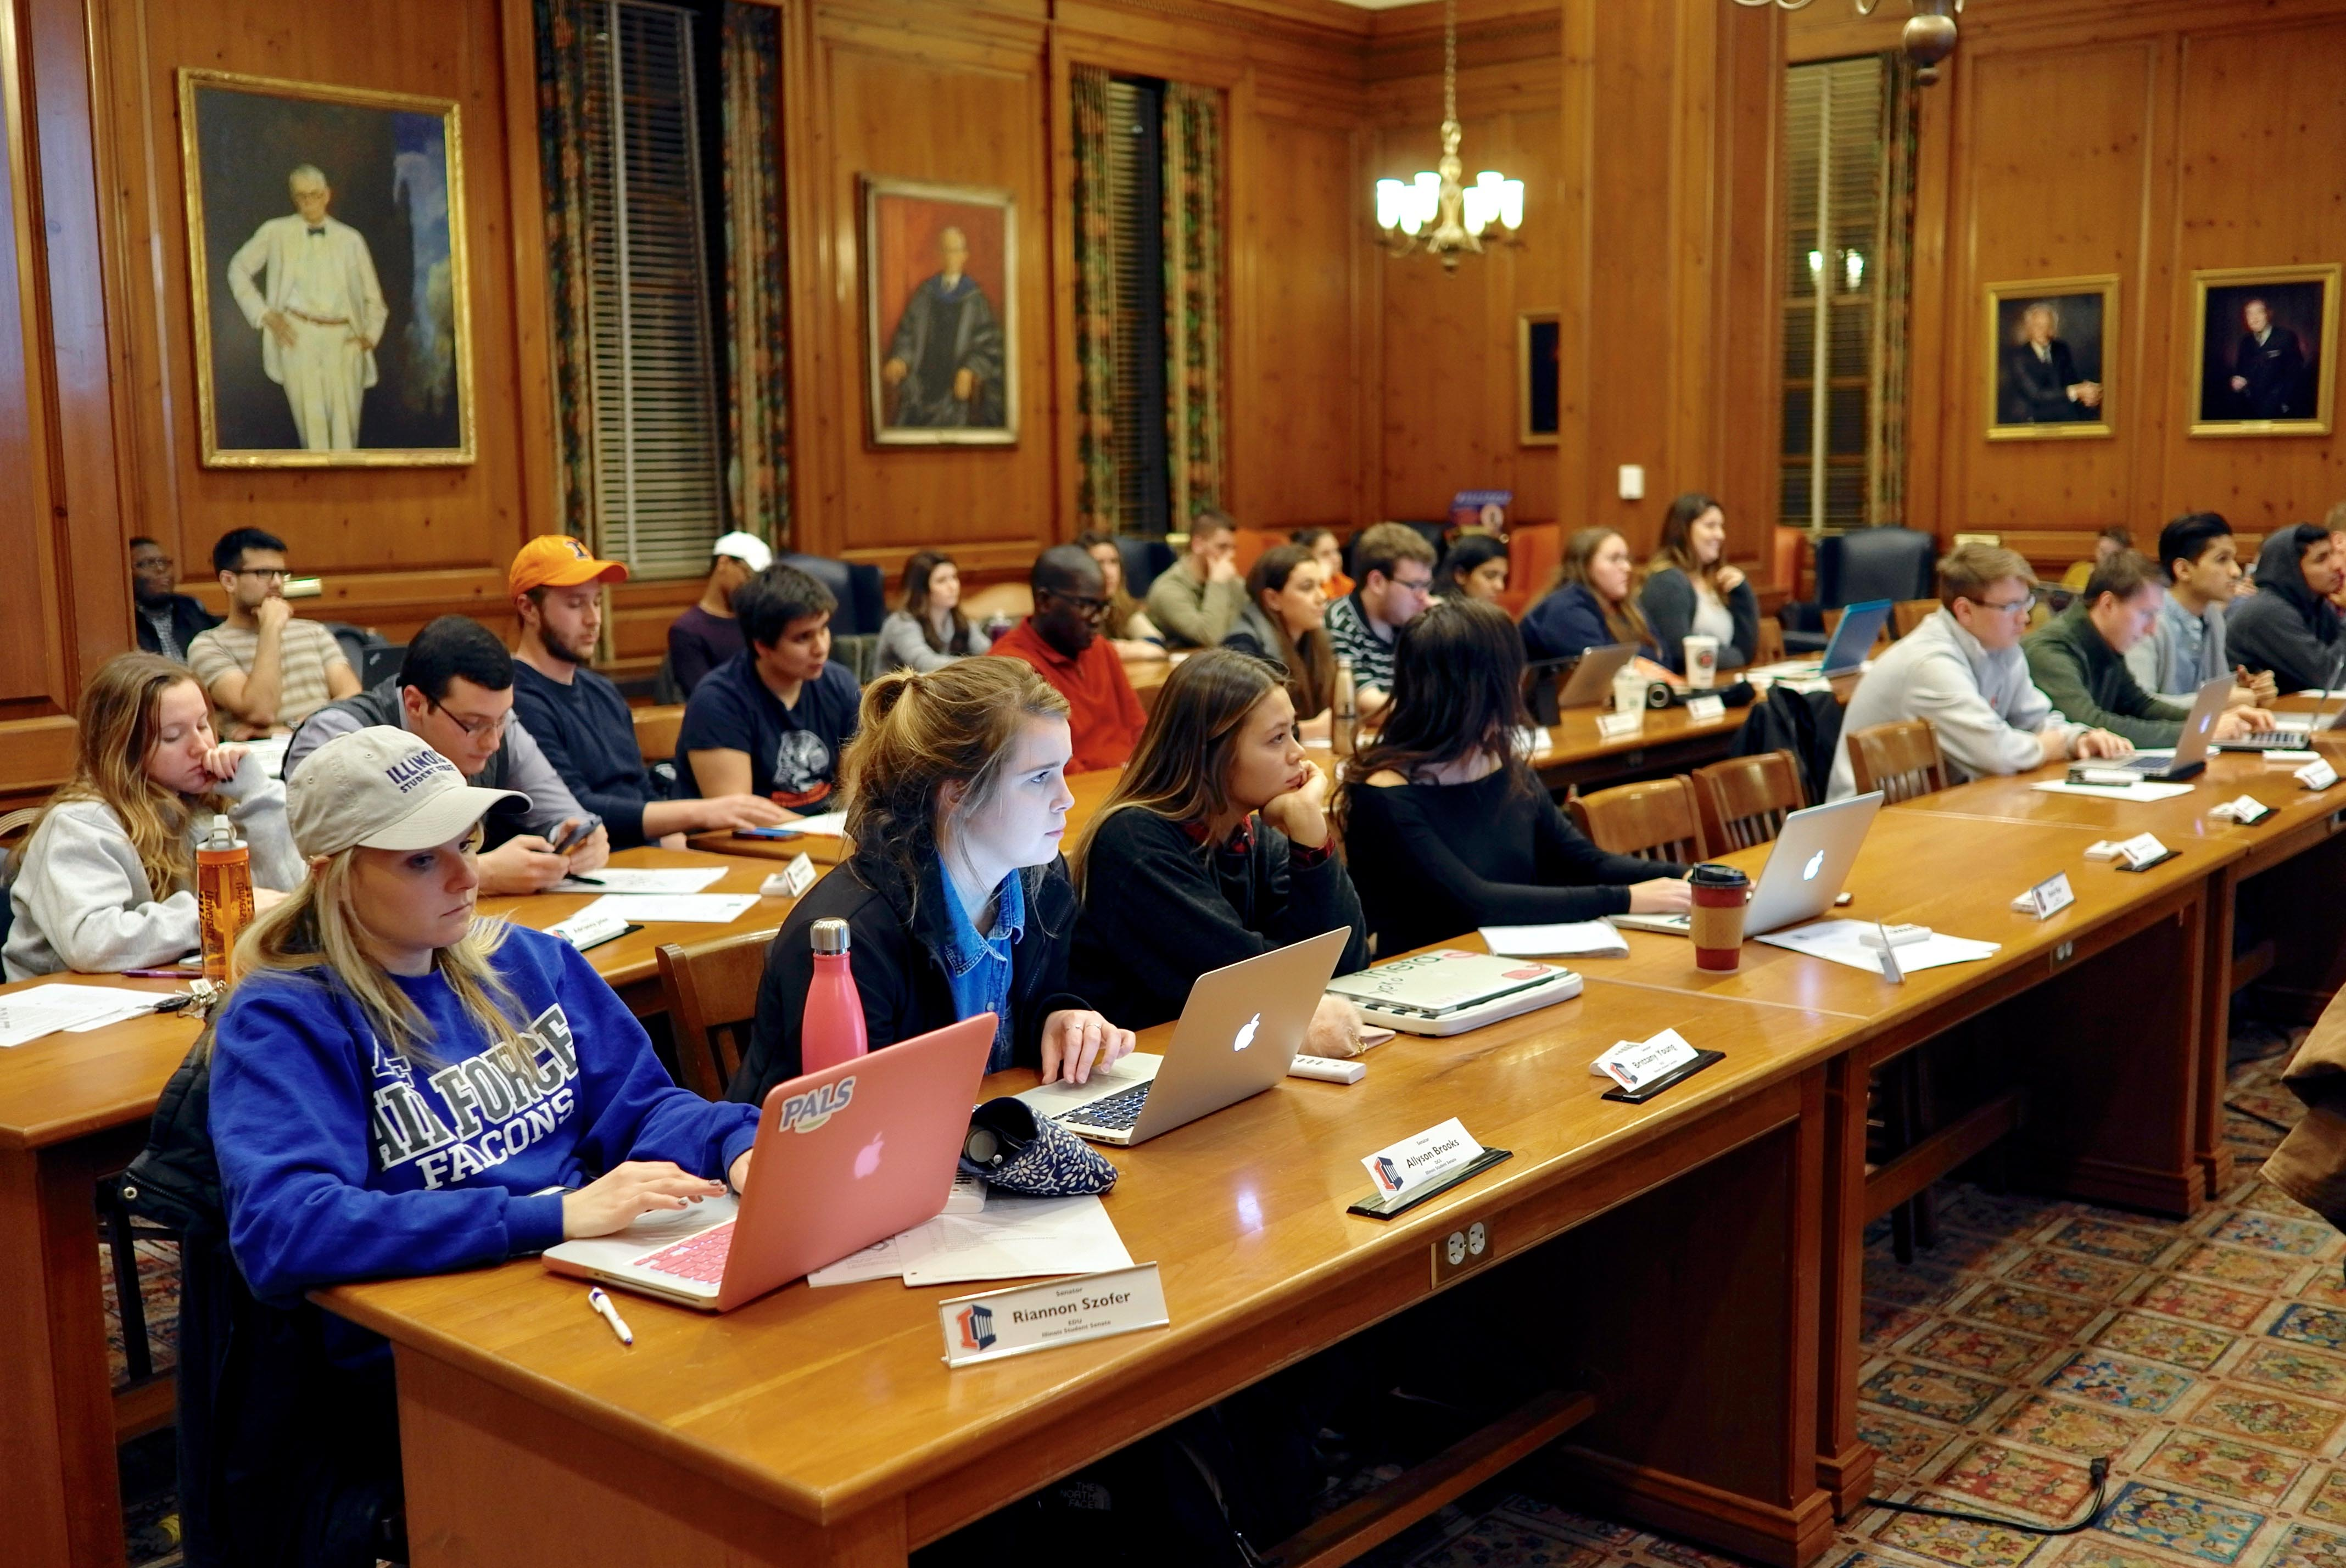 The Illini Student Government in the Pine Room at the Illini Union on Jan. 18. The student government participated in a conference call on April 5 with former Vice President Joe Biden regarding the It's On Us initiative.